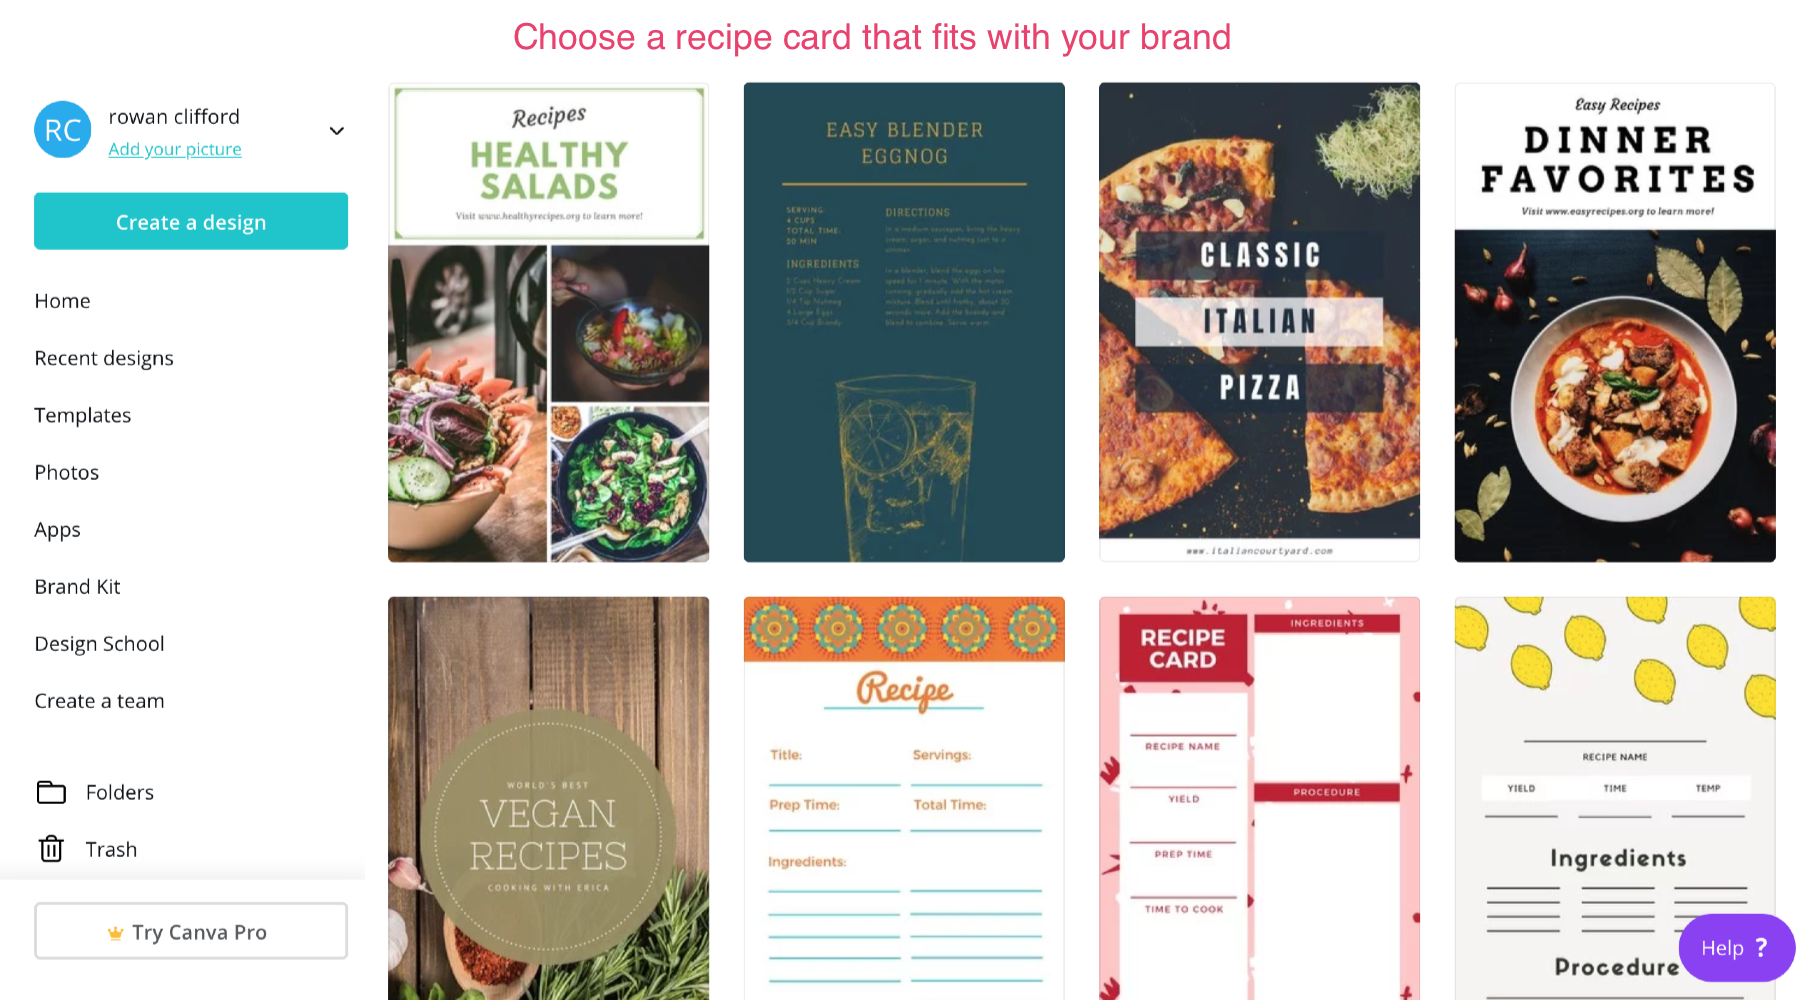 choose a recipe card that fits your brand